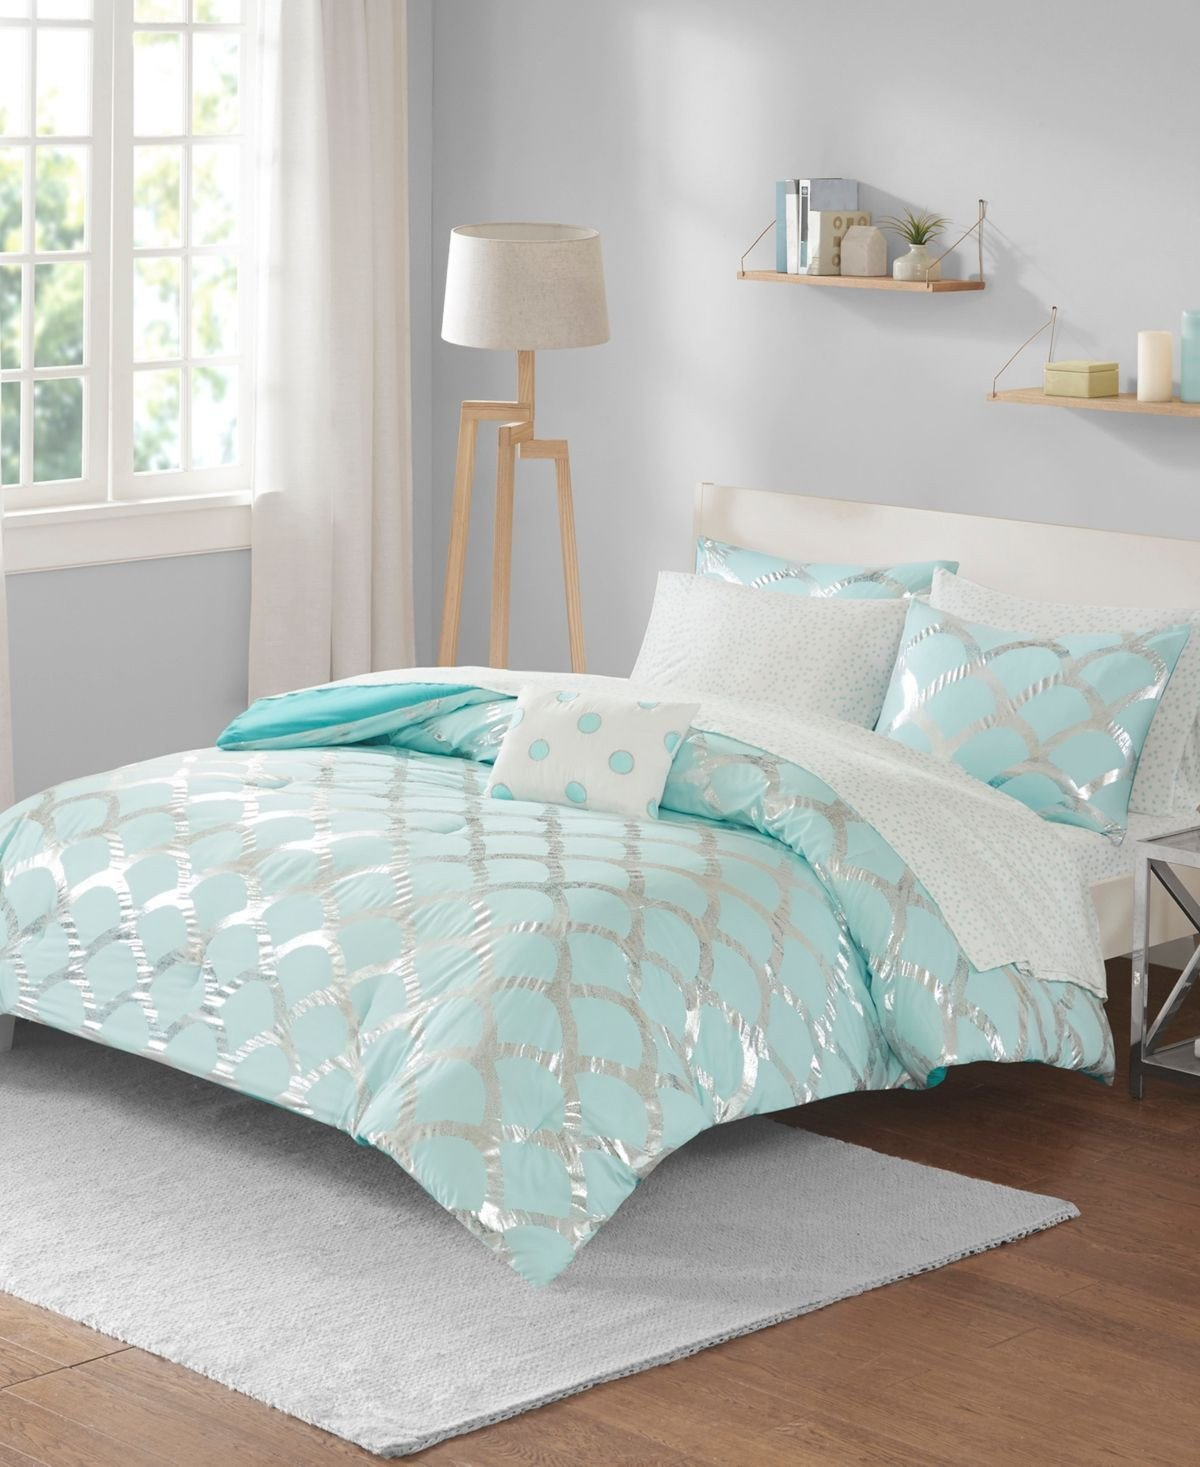 Gray and Aqua Bedroom Lovely Pin On Products